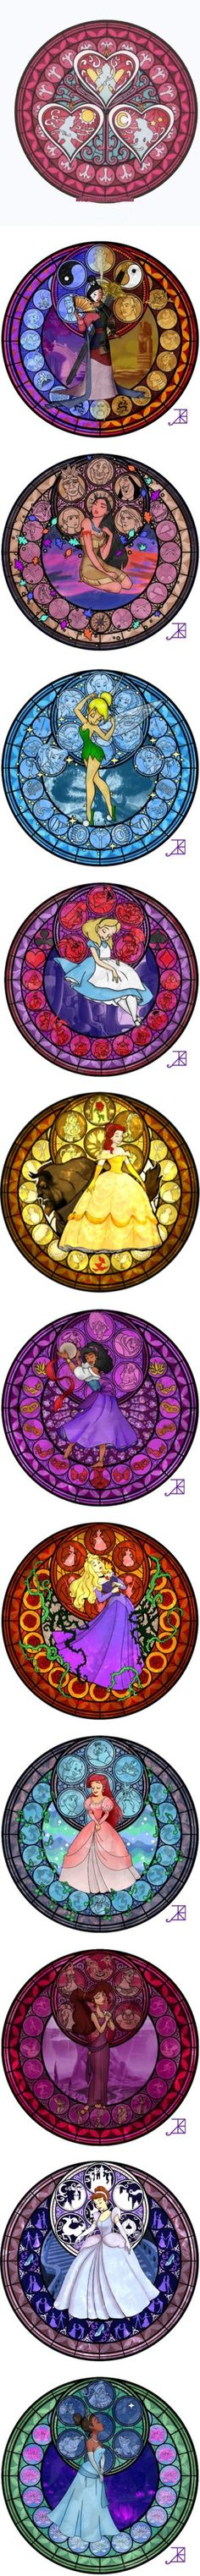 Disney princess stained glass by shygirl1229 ❤ liked on Polyvore